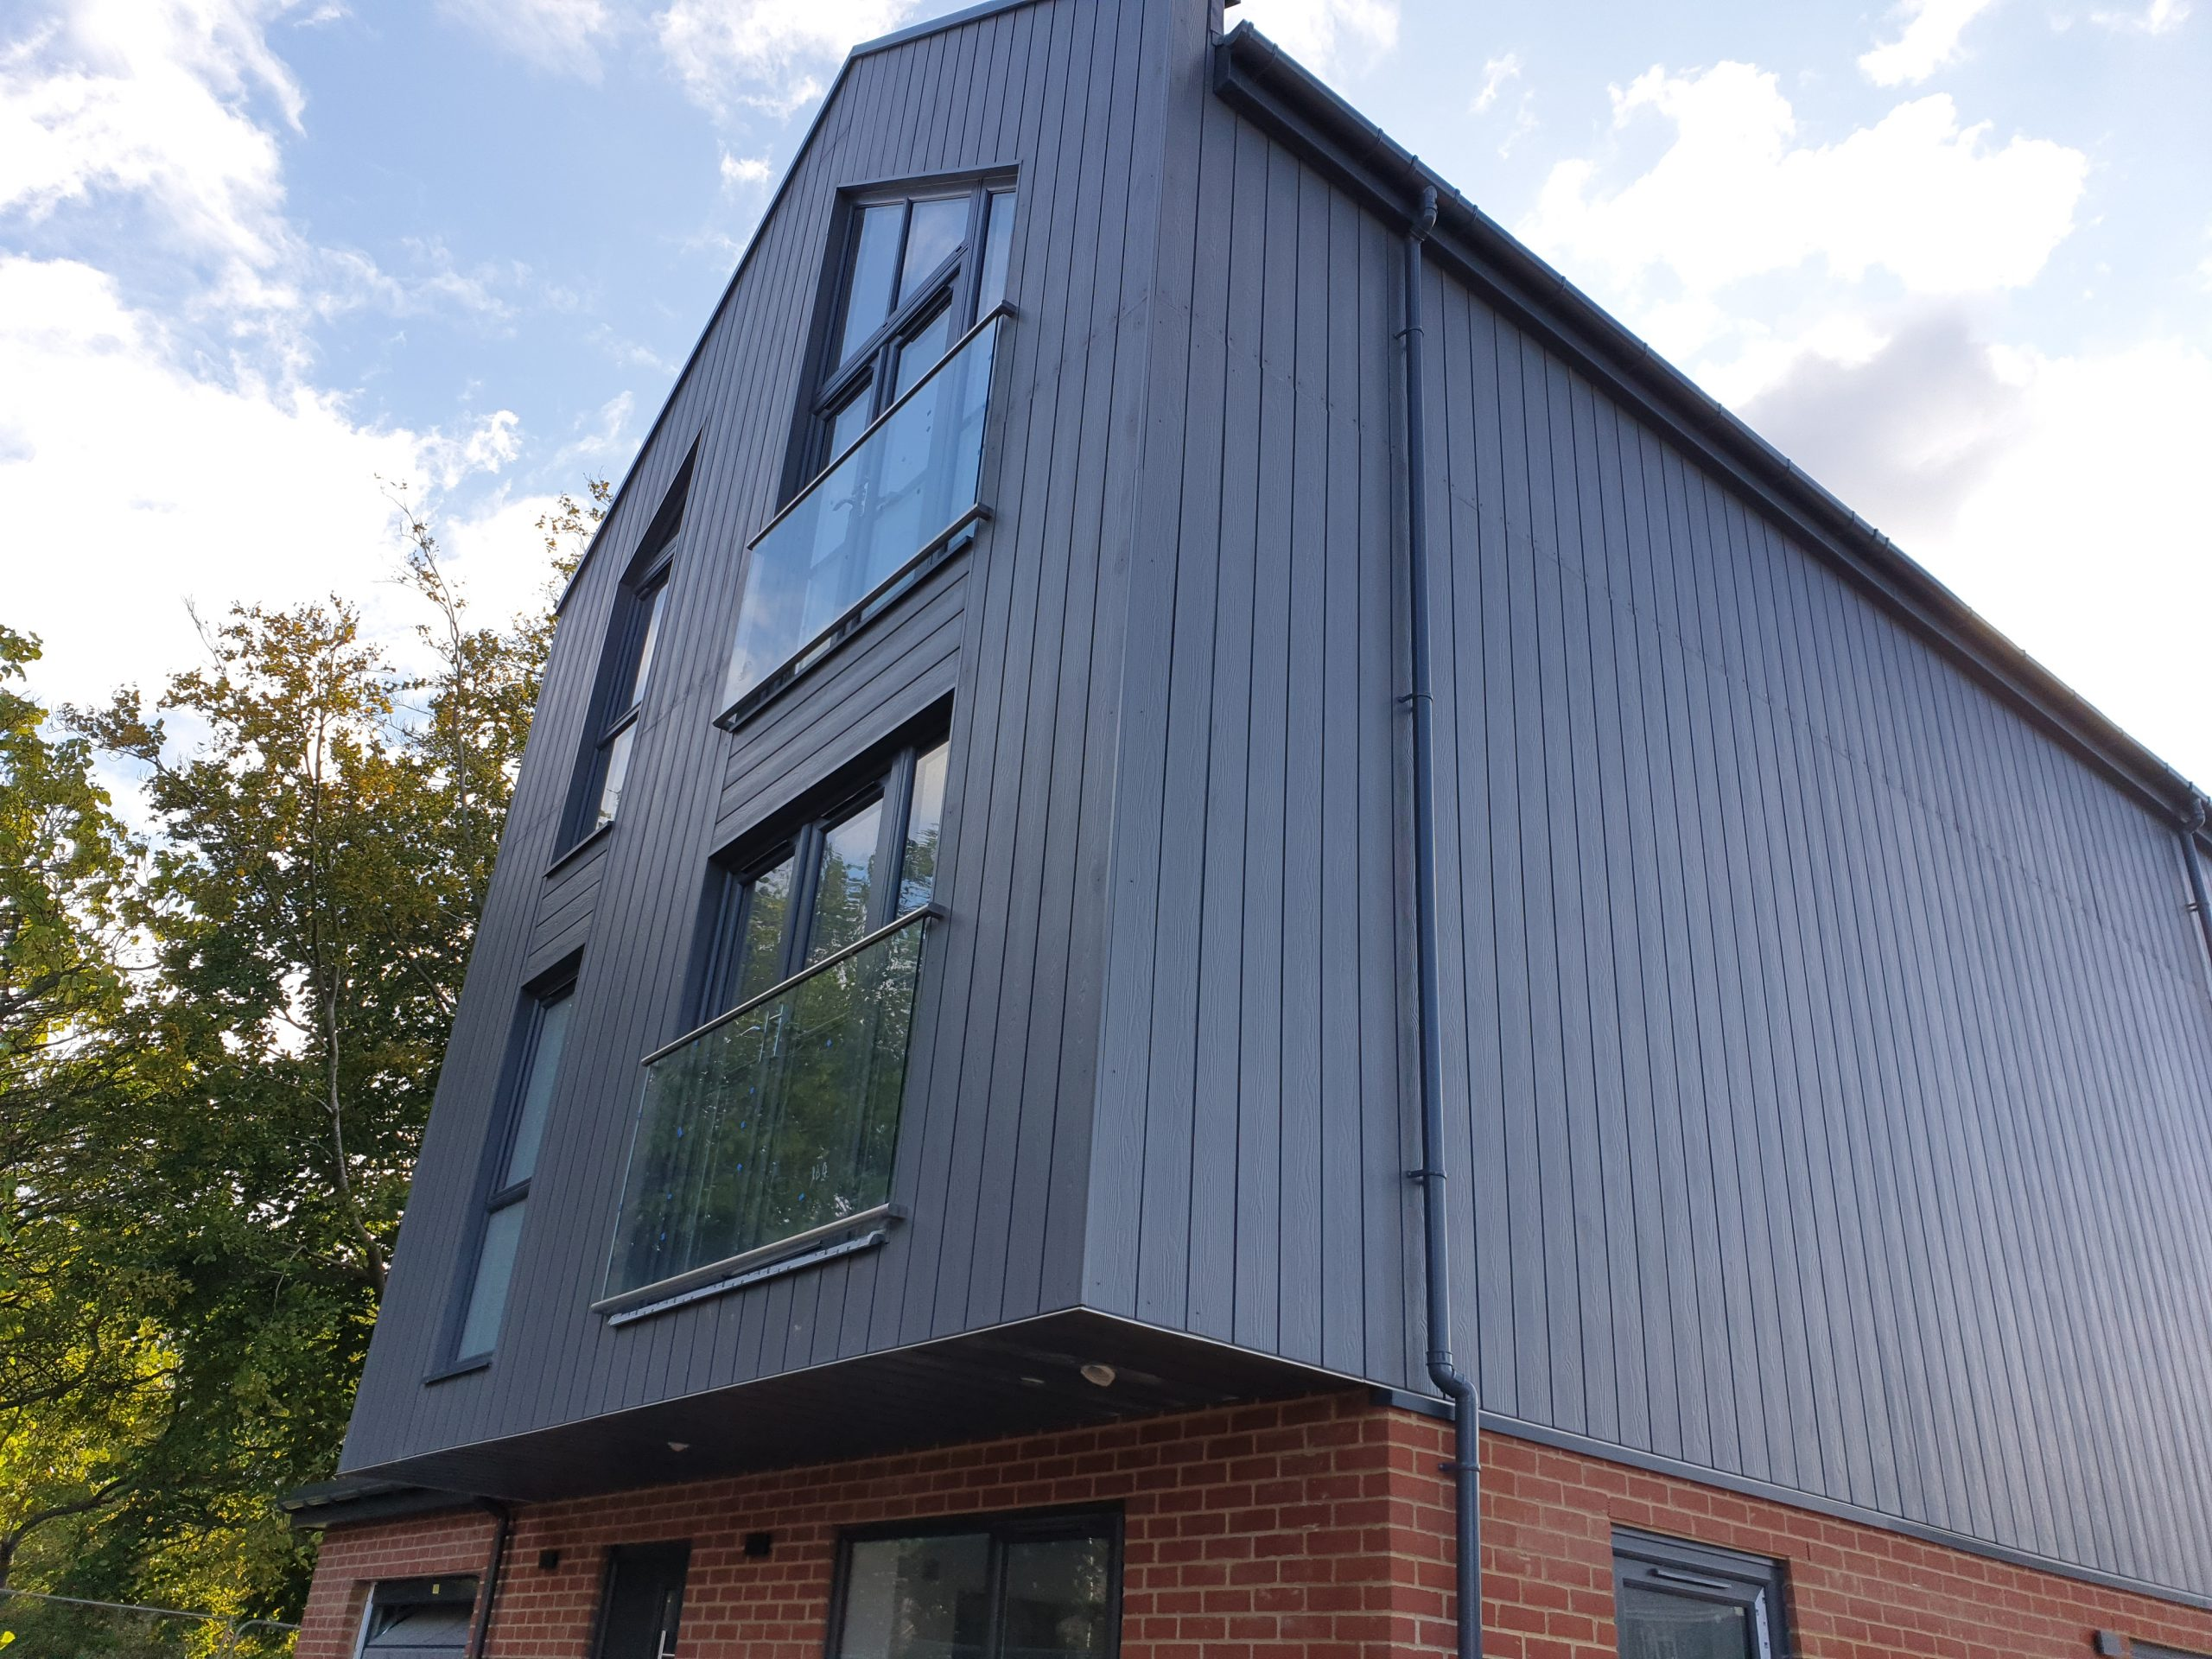 home at Lime Grove featuring timber and brick exterior